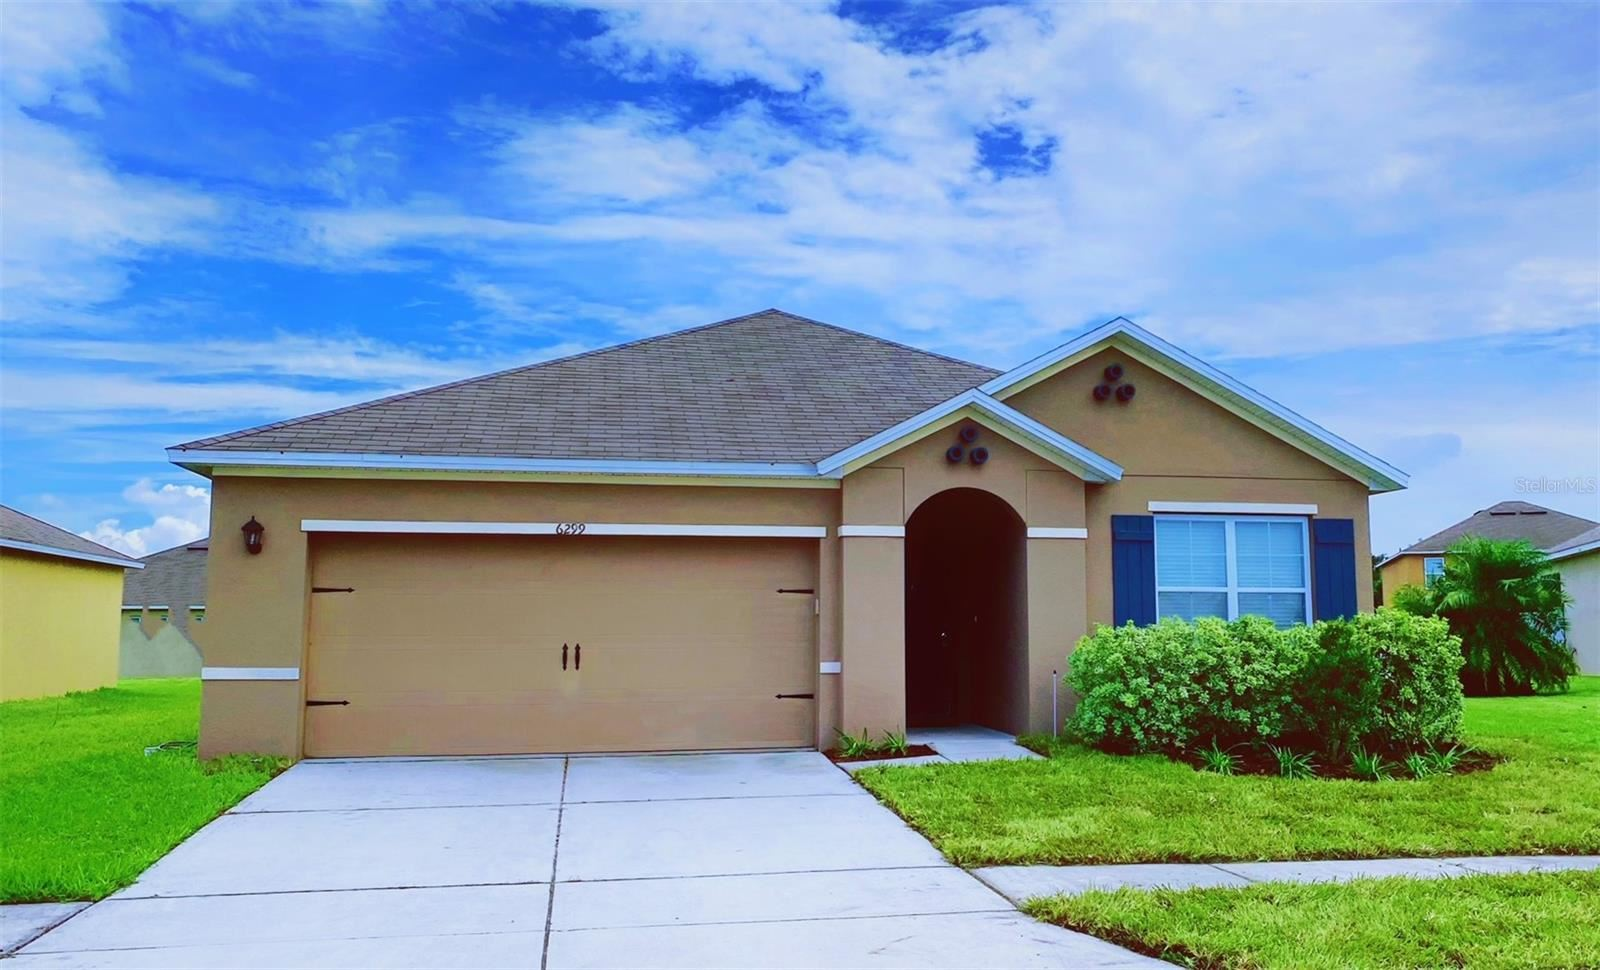 6299 RED HERRING DRIVE, Winter Haven, FL 33881 - #: O5970310